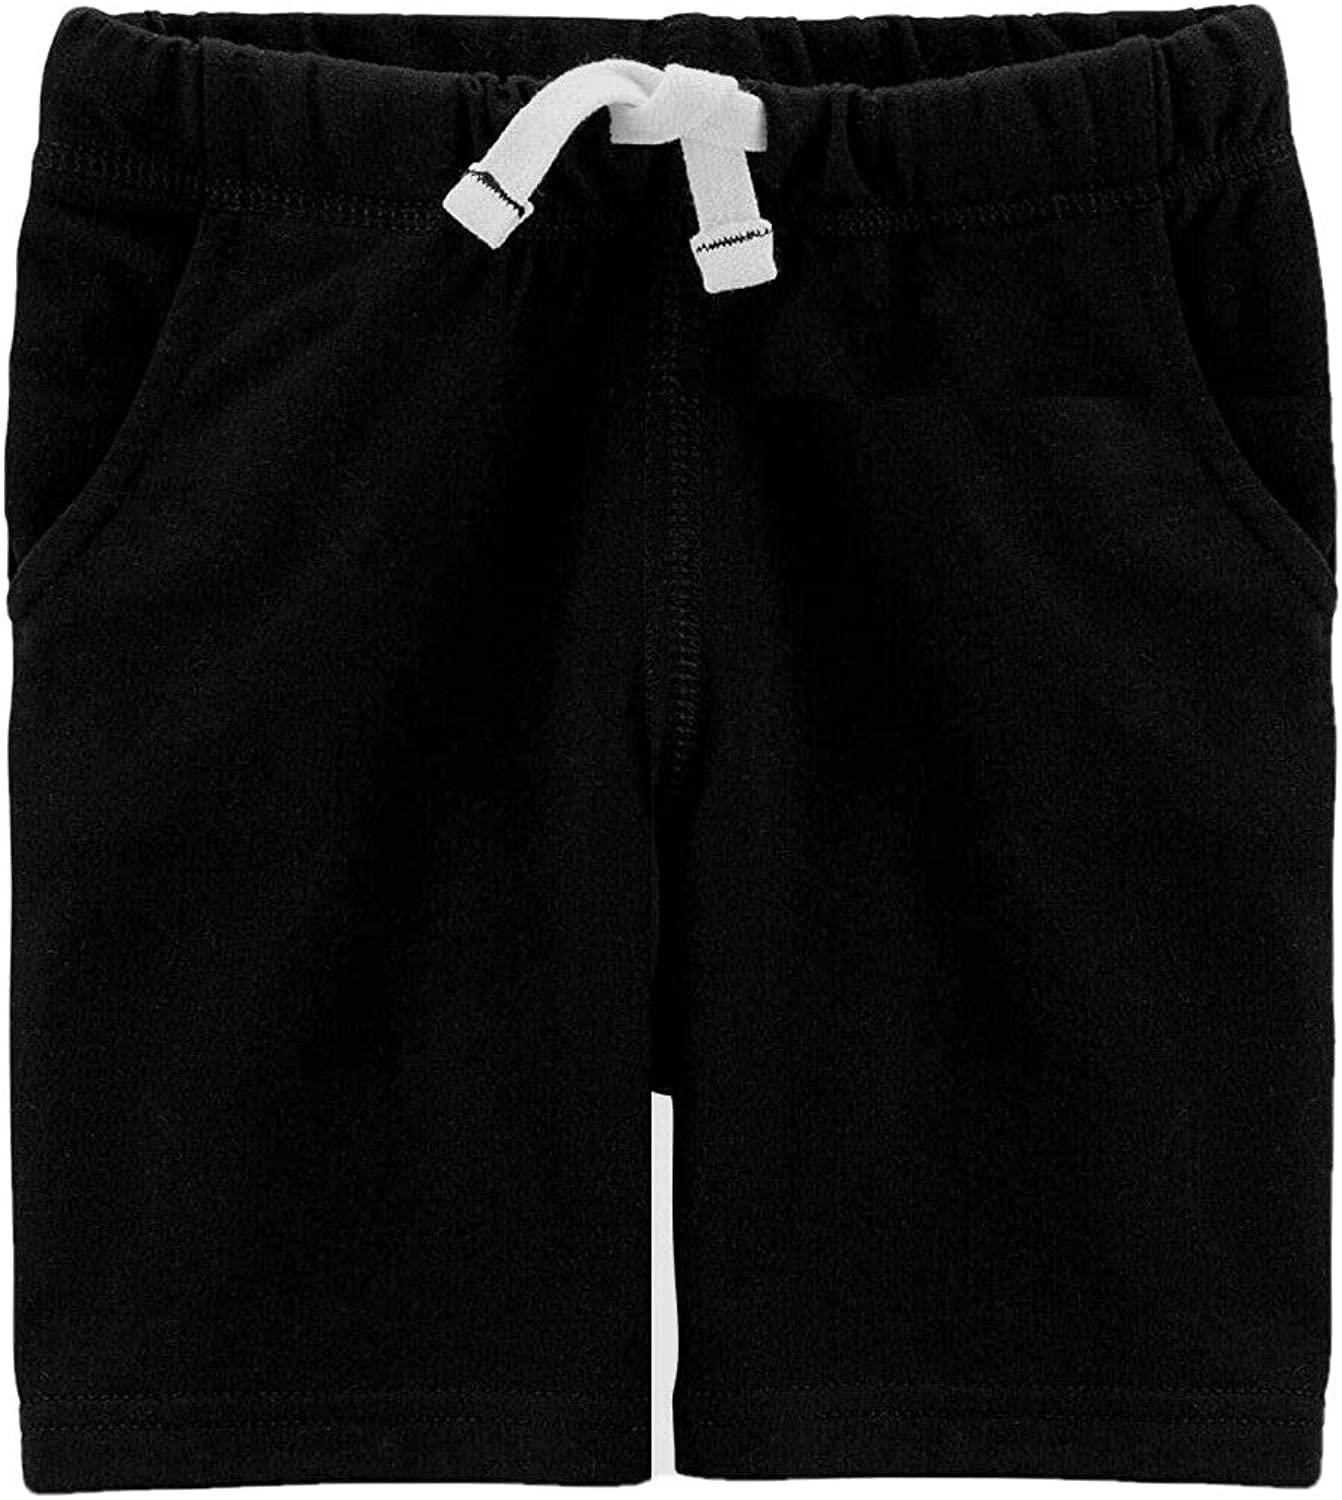 Al Daily bargain sale sold out. Carter's Girls Black Knit Size Shorts 5 4